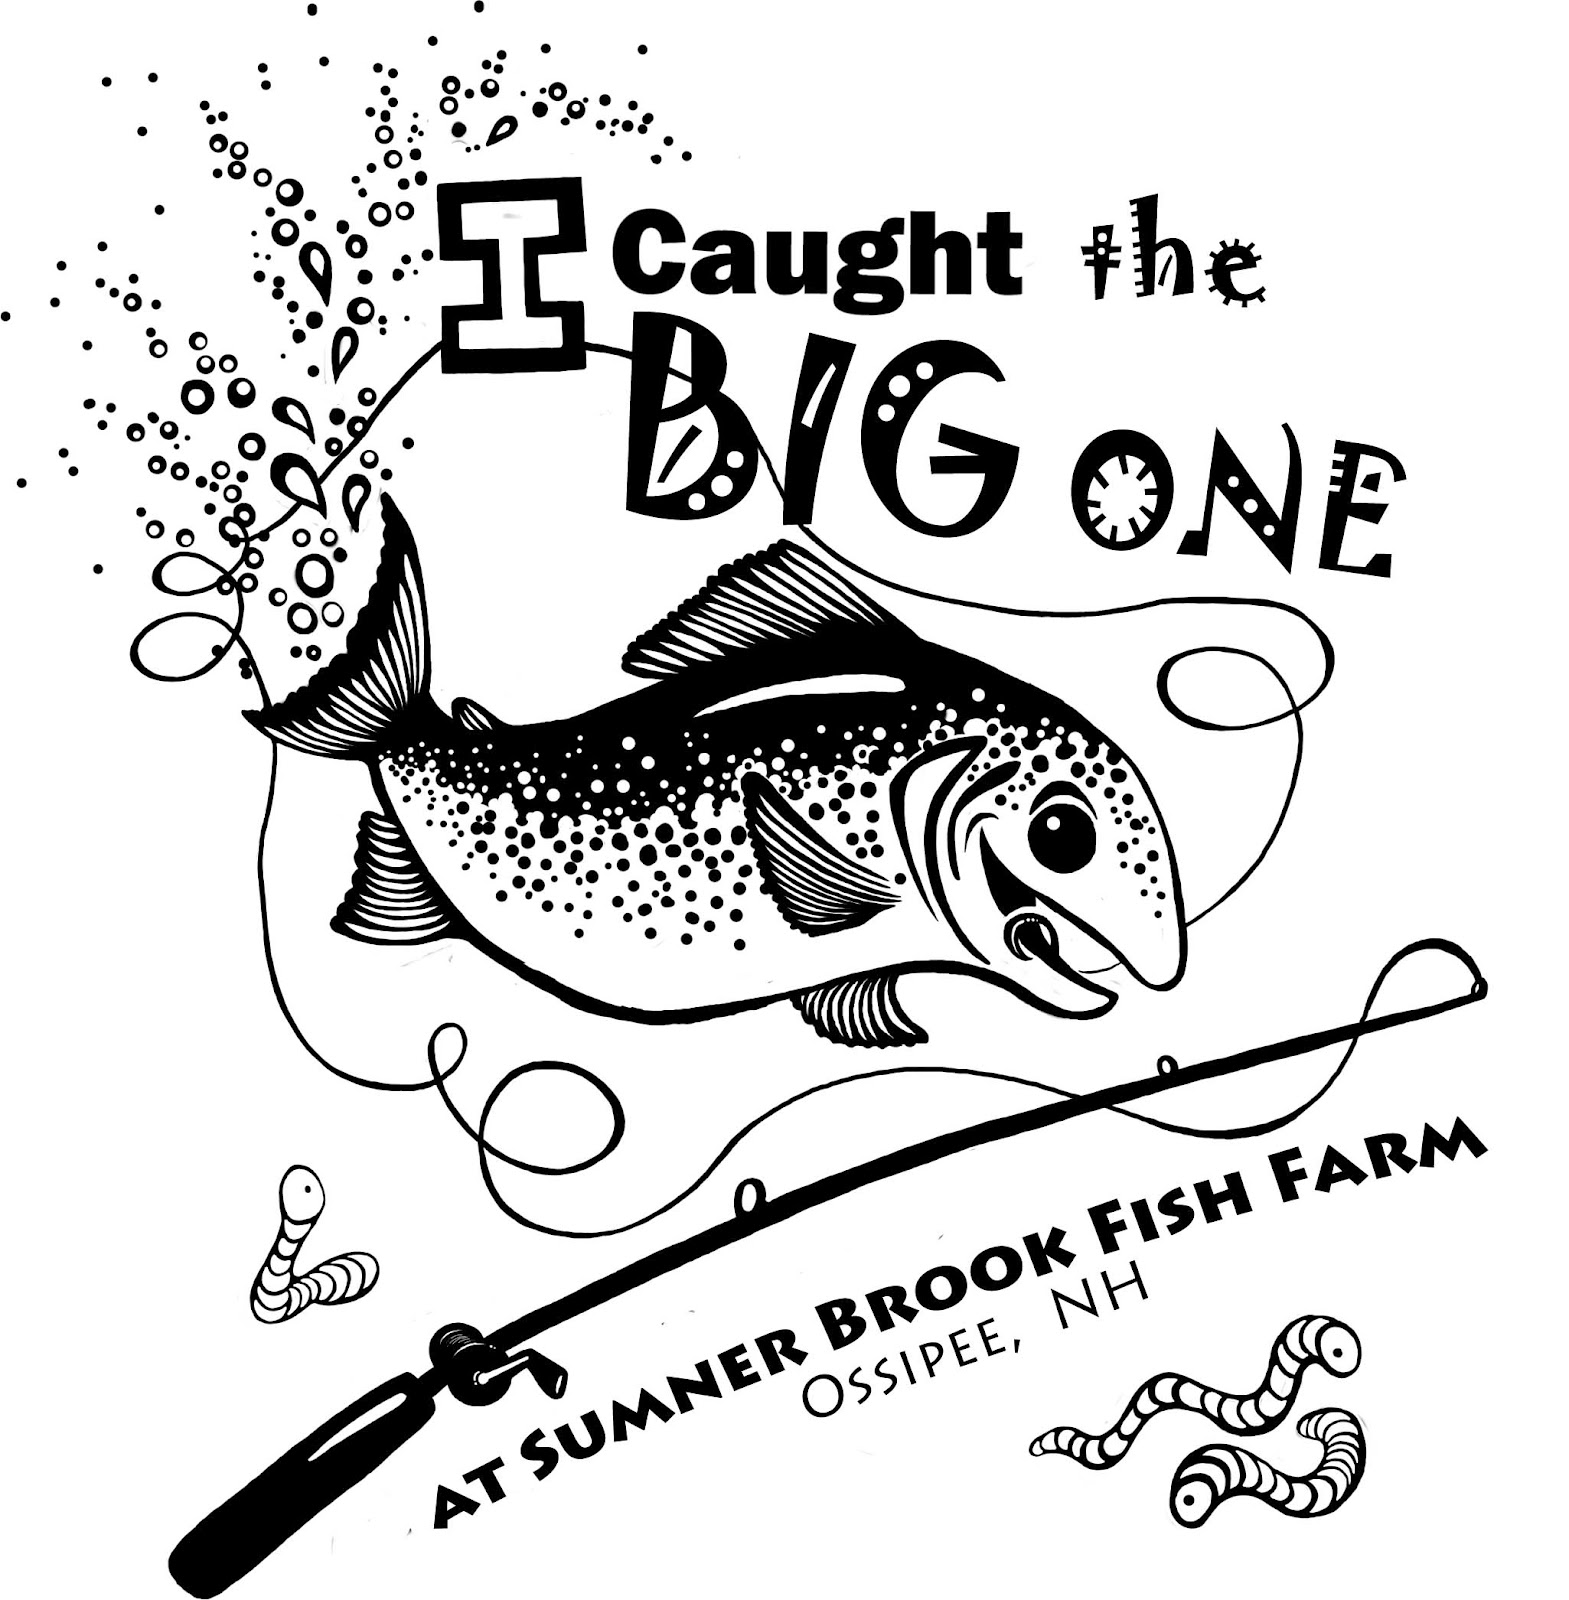 Design t shirts to sell - I Created This On Adobe Photoshop Kinda Wish I Inked The Fish By Hand With Pen And Ink And Then Scanned It Into The Computer Sometimes I Think Traditional